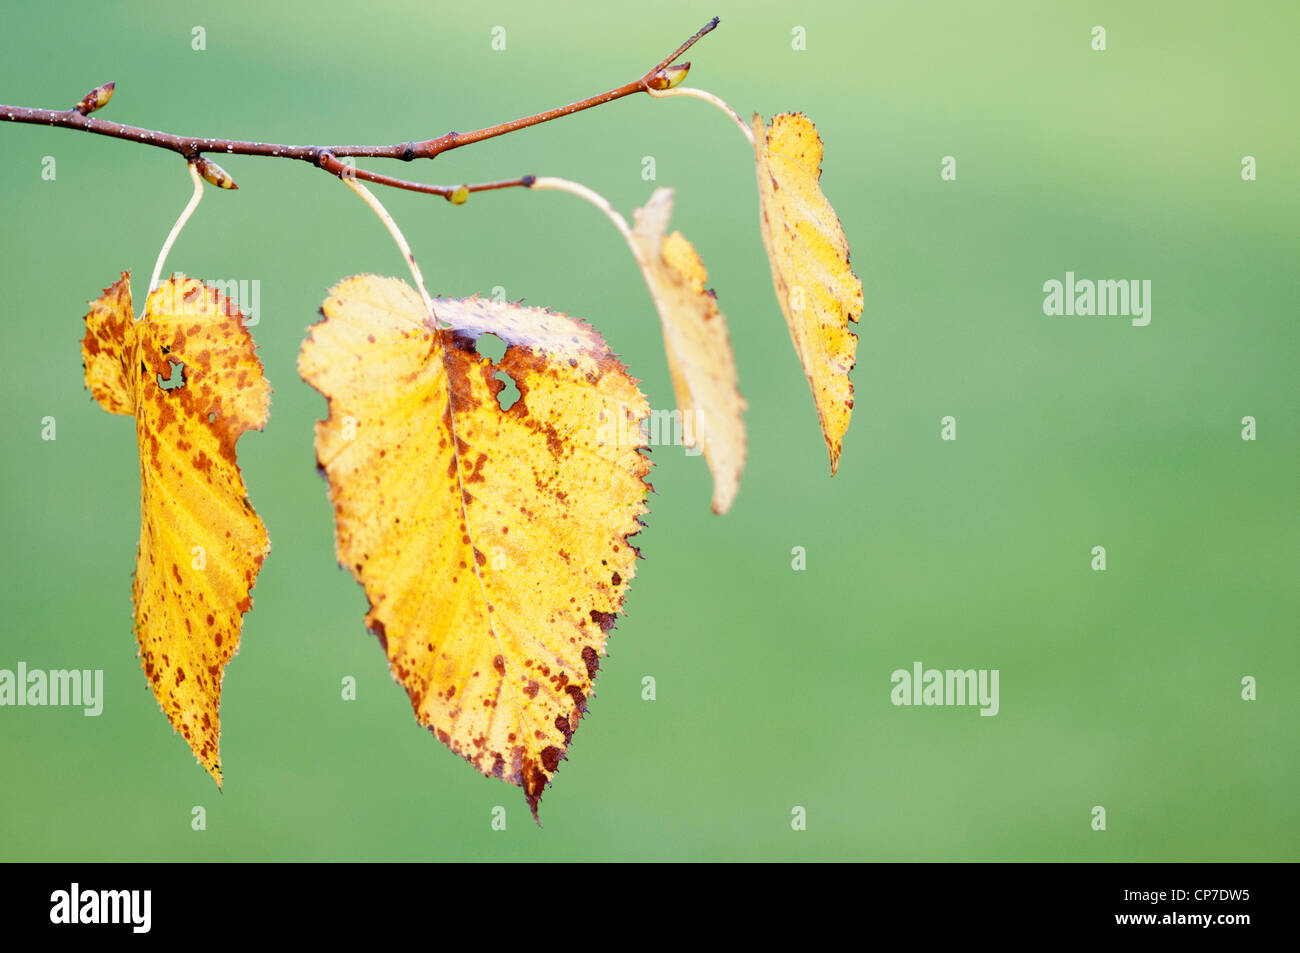 Betula pendula, Birch, Silver birch, Yellow, Green. Stock Photo